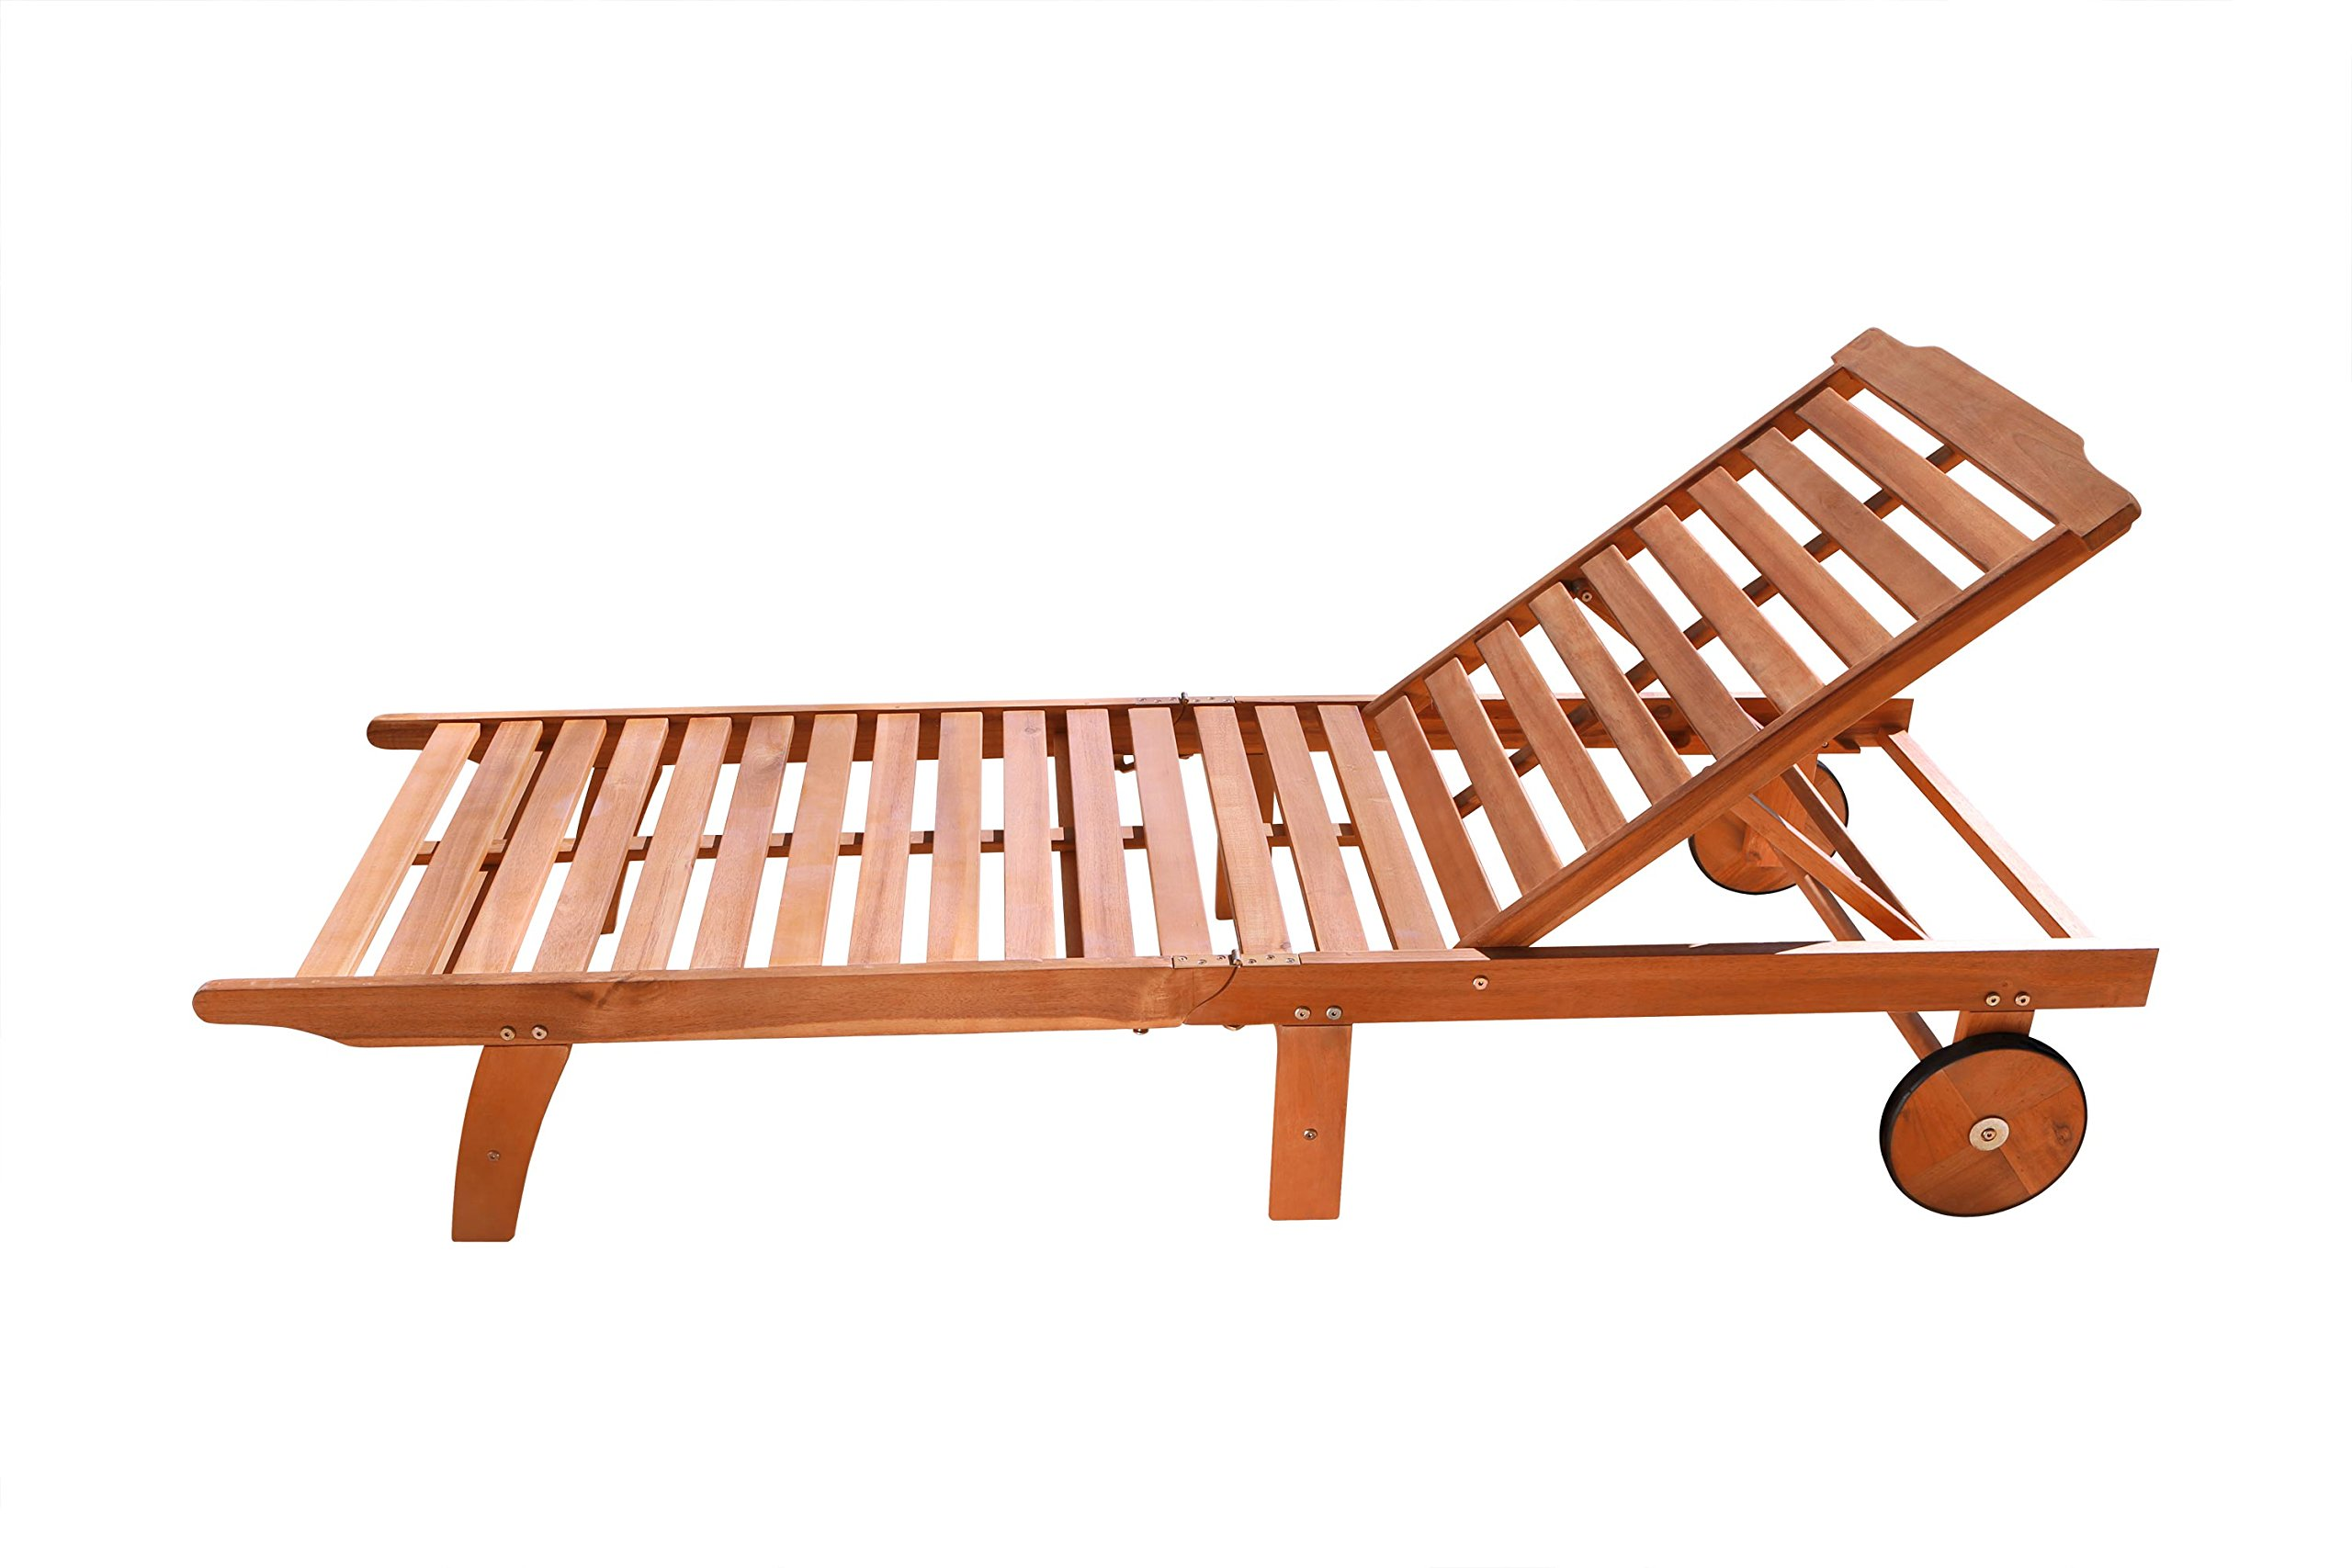 VIFAH V255 Outdoor Wood Single Chaise Lounge, Natural Wood Finish, 75 by 28 by 13-Inch by Vifah